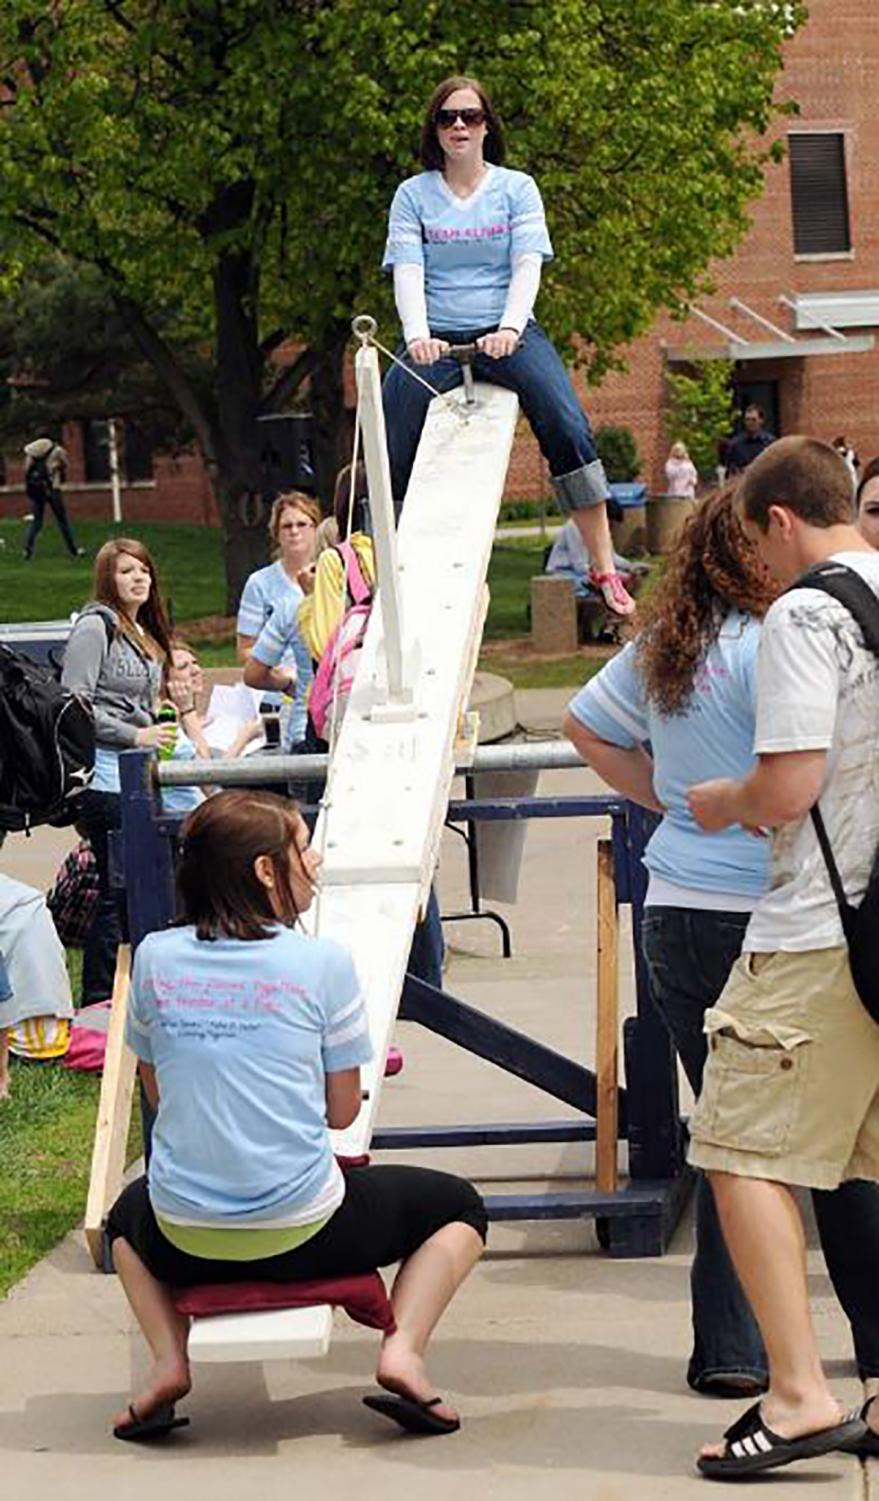 Alpha Xi Delta promotes conversations on Autism Spectrum Disorder (ASD) at events like the Teeter Totter-A-Thon.